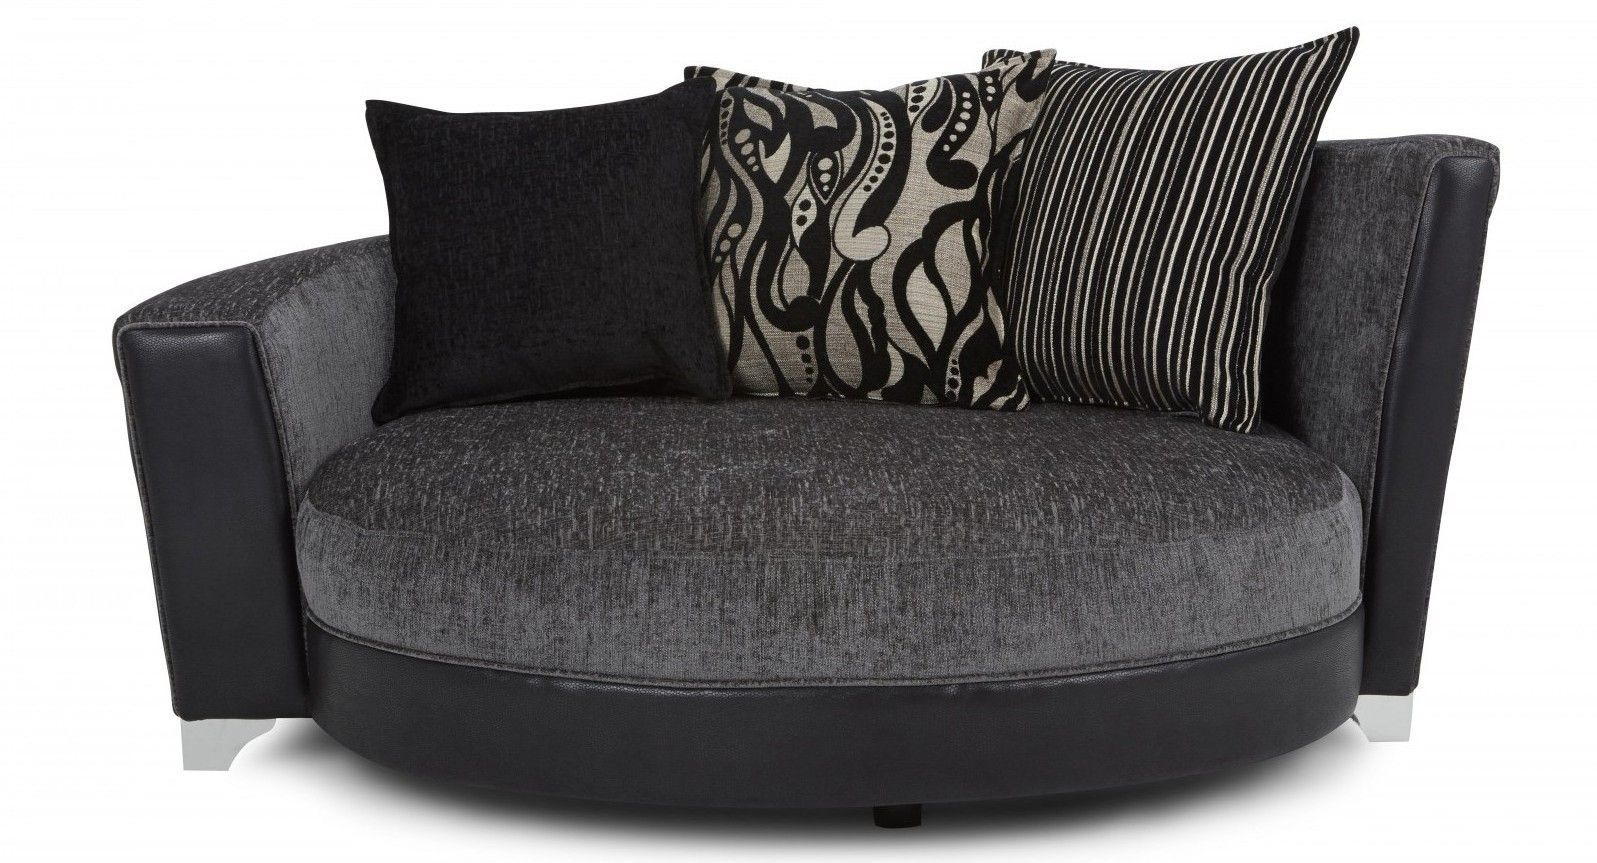 Cinema Sessel Hollywood Helix Cuddler Round Sofa Sofas Sofa Cuddler Sofa Round Sofa